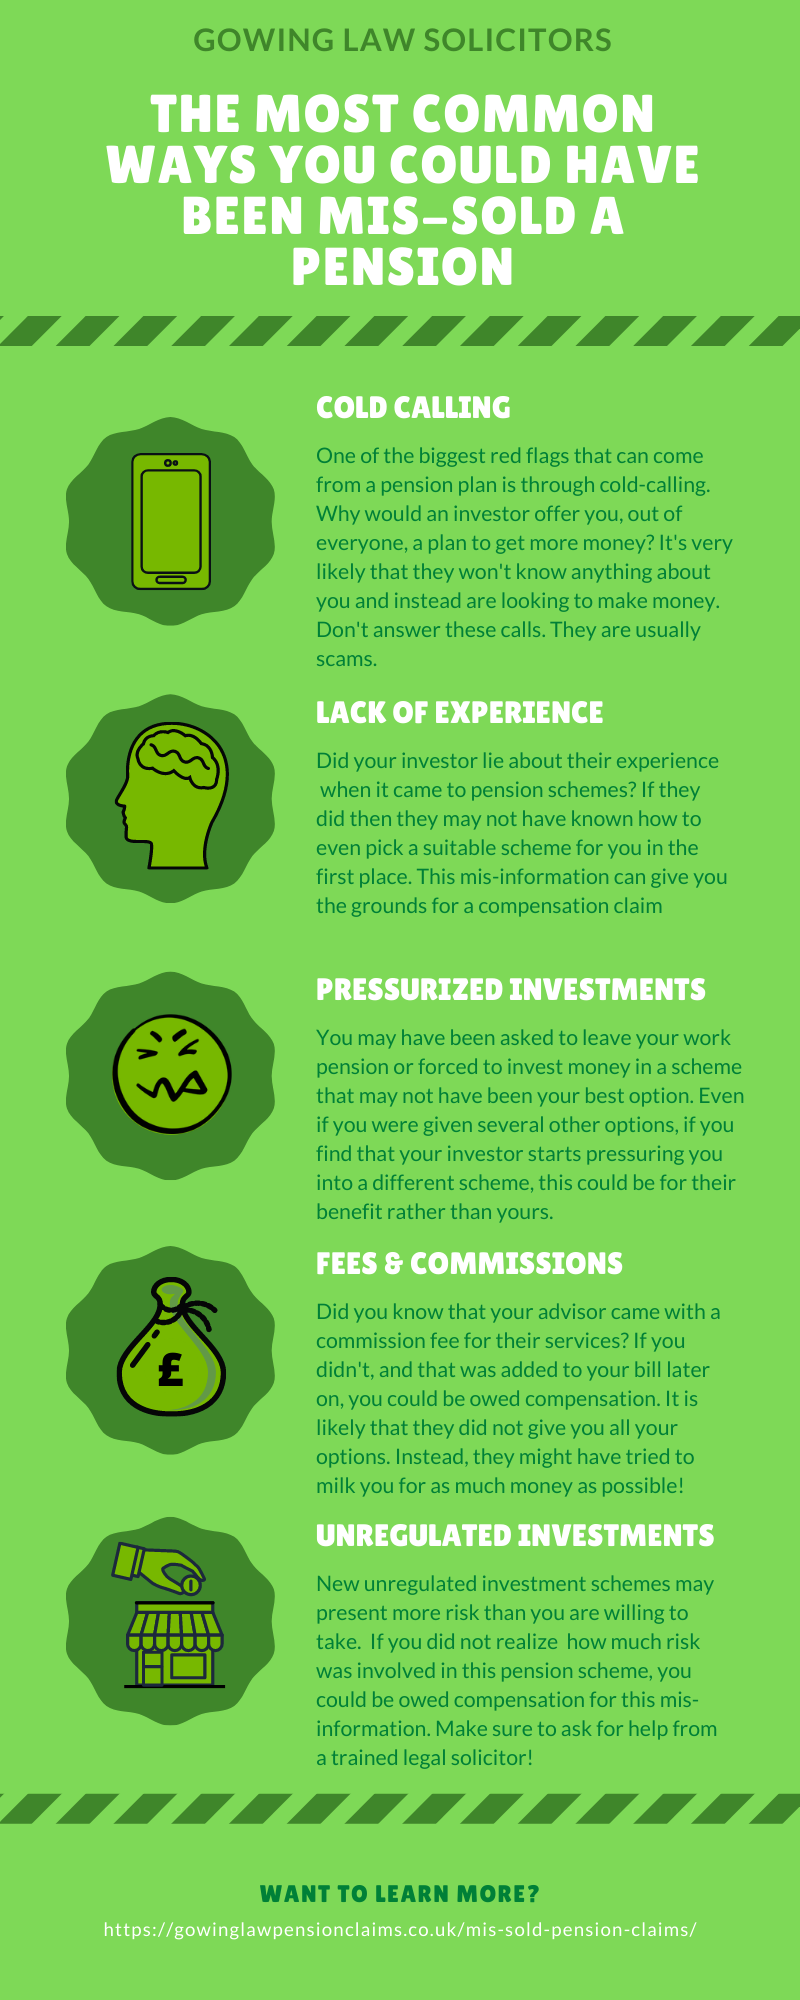 mis-sold pension infographic